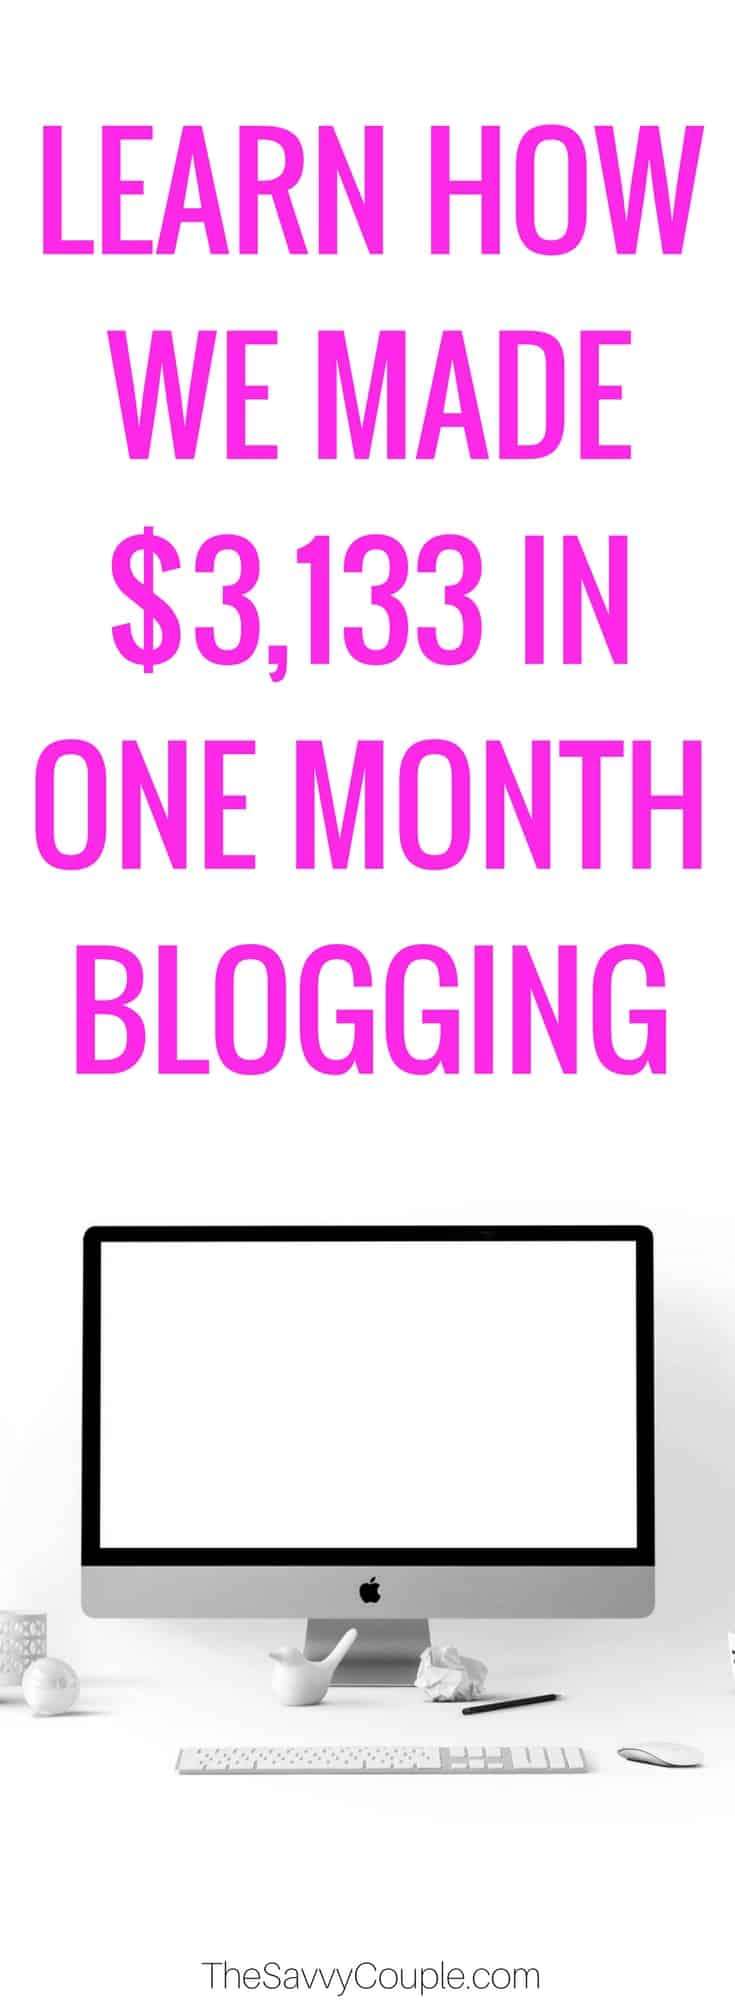 In September 2017, we made $3,133 from blogging on our website The Savvy Couple. This income report will show you how I made money online last month. Who doesn't love a side hustle that can make you passive income? Read to find out more on how you can blog full-time and leave your 9-5 job. Make Money Online | Blogging Full-Time | Passive Income |